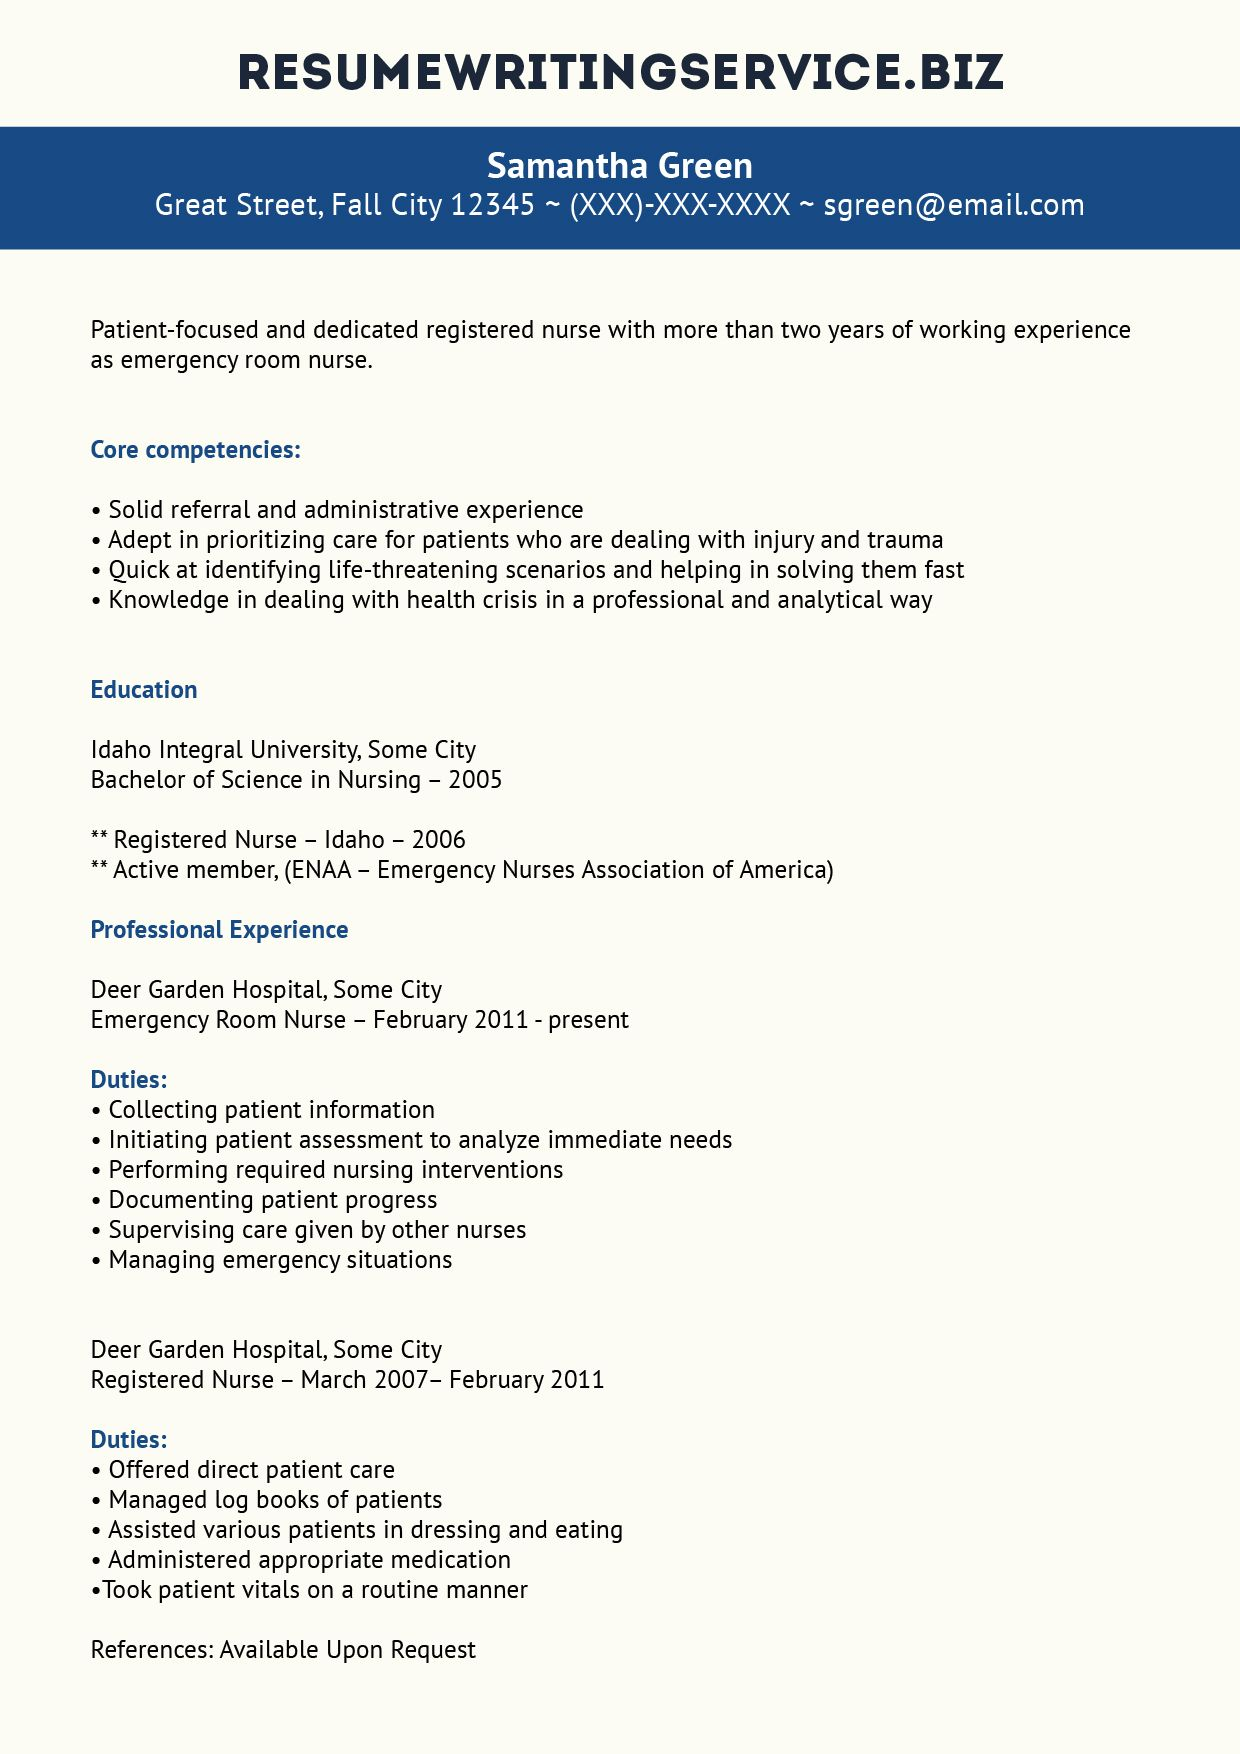 Er Nurse Resume Sample Emergency Room Nurse Nursing